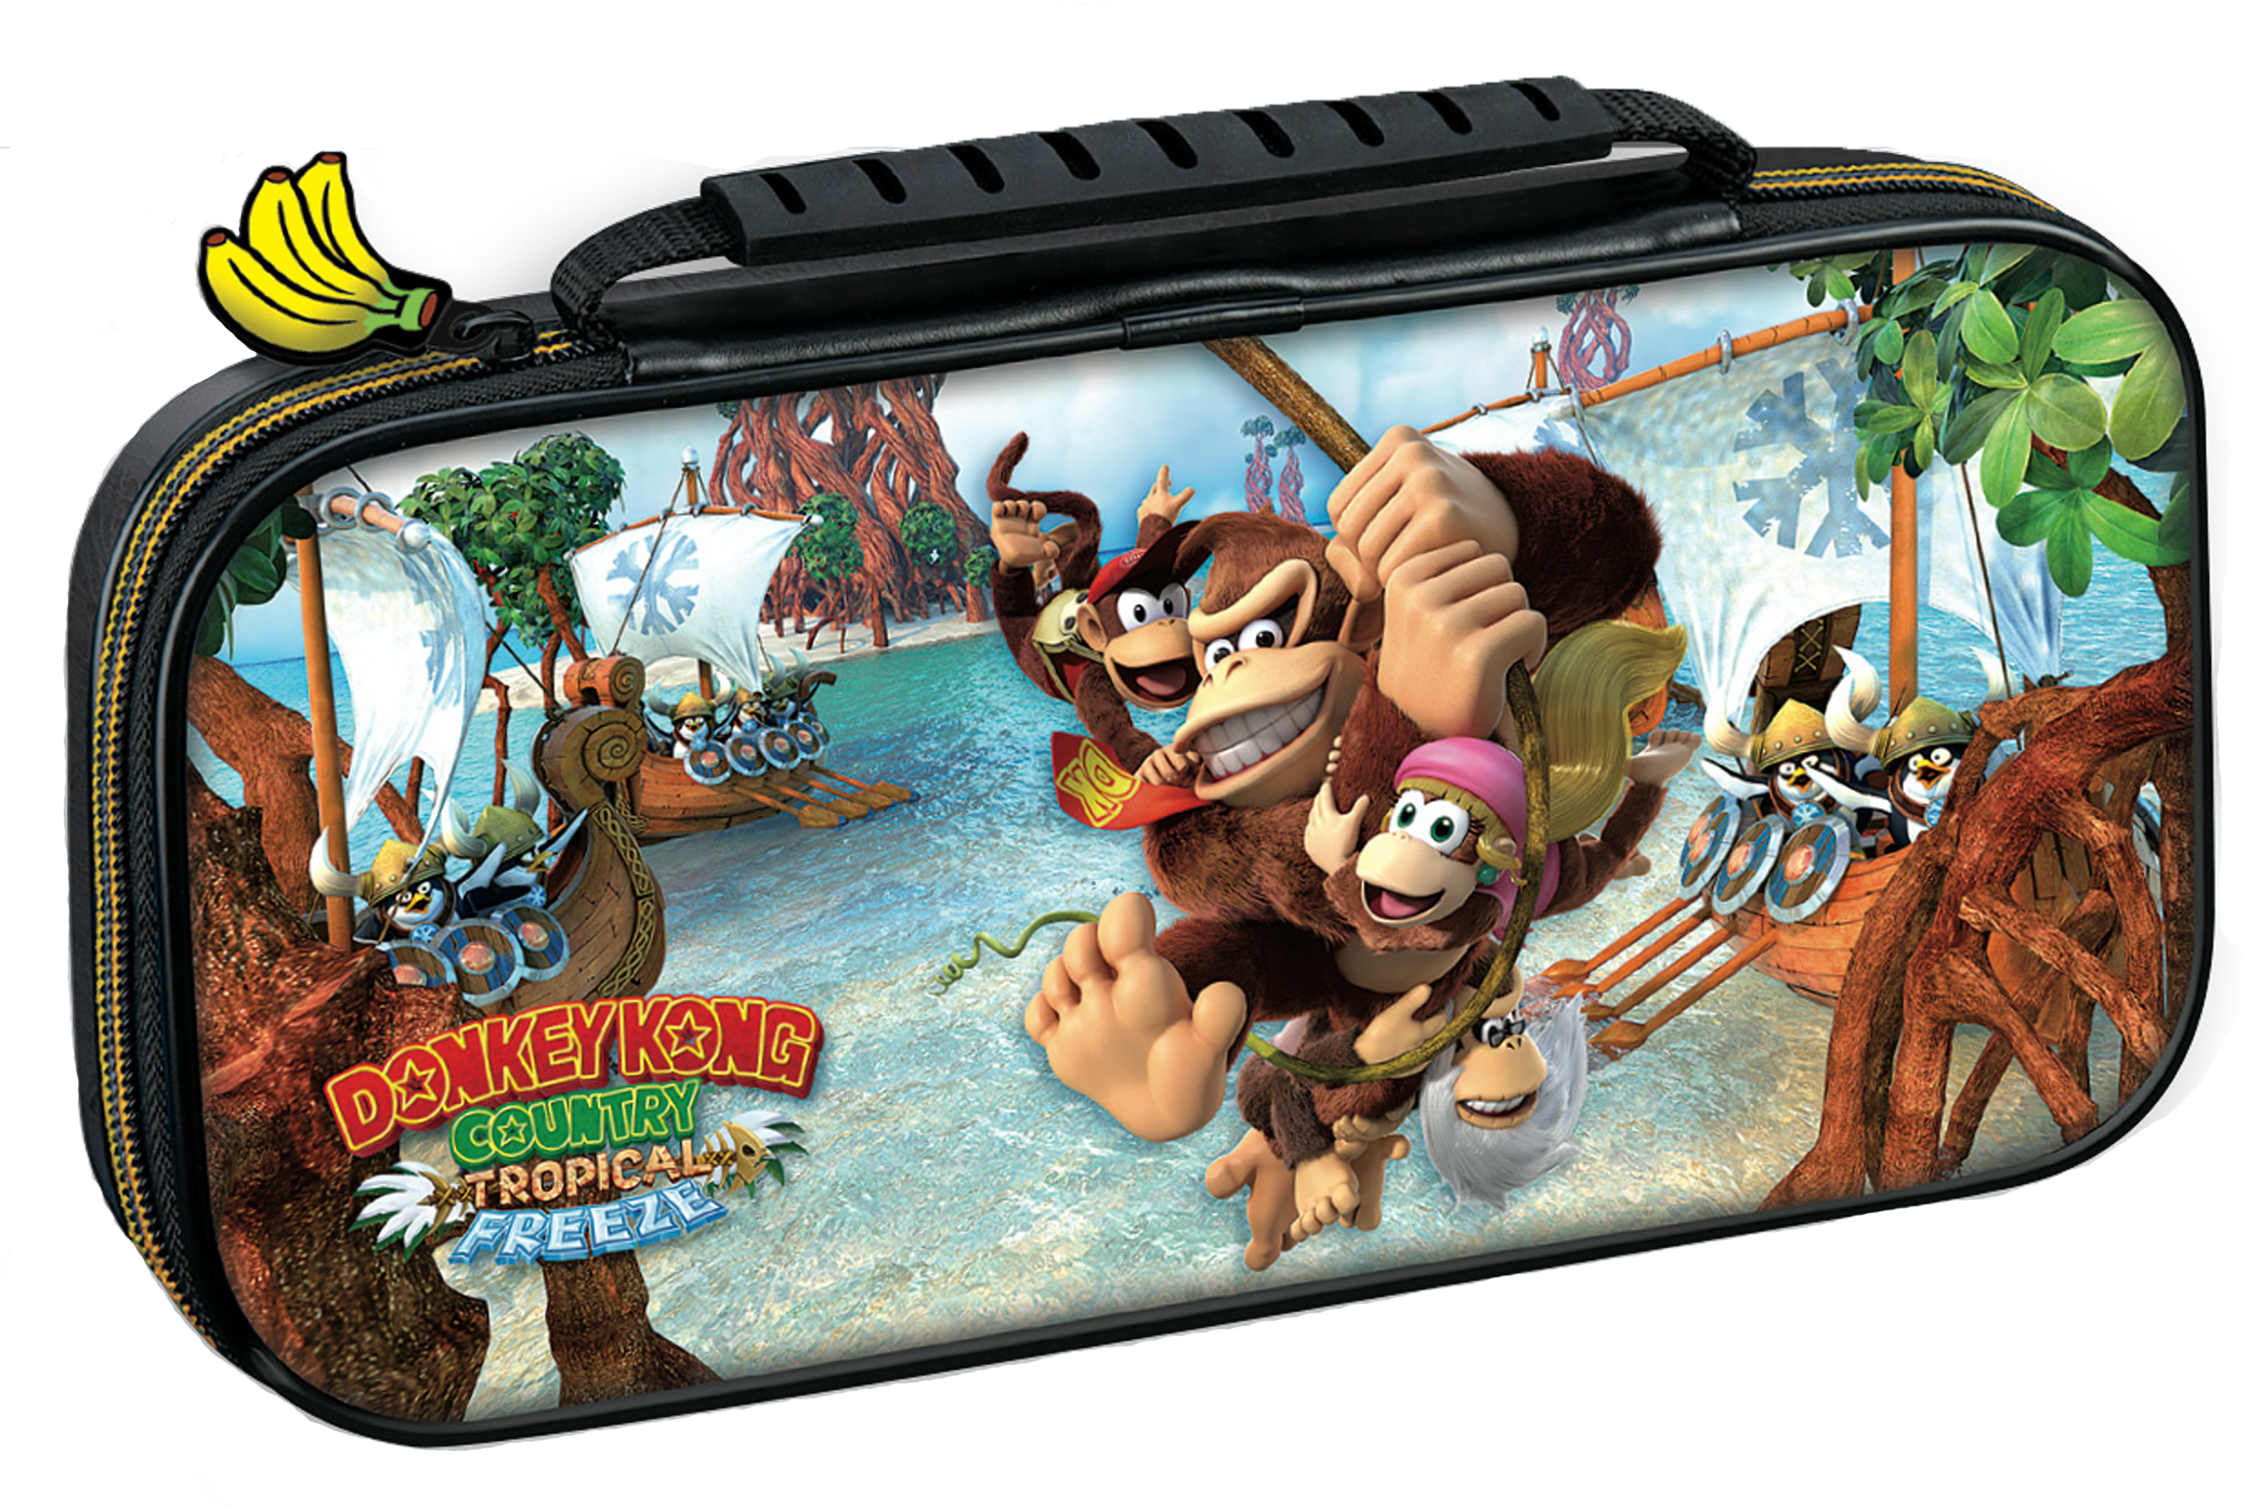 Deluxe Travel Case (Donkey Kong Edition)